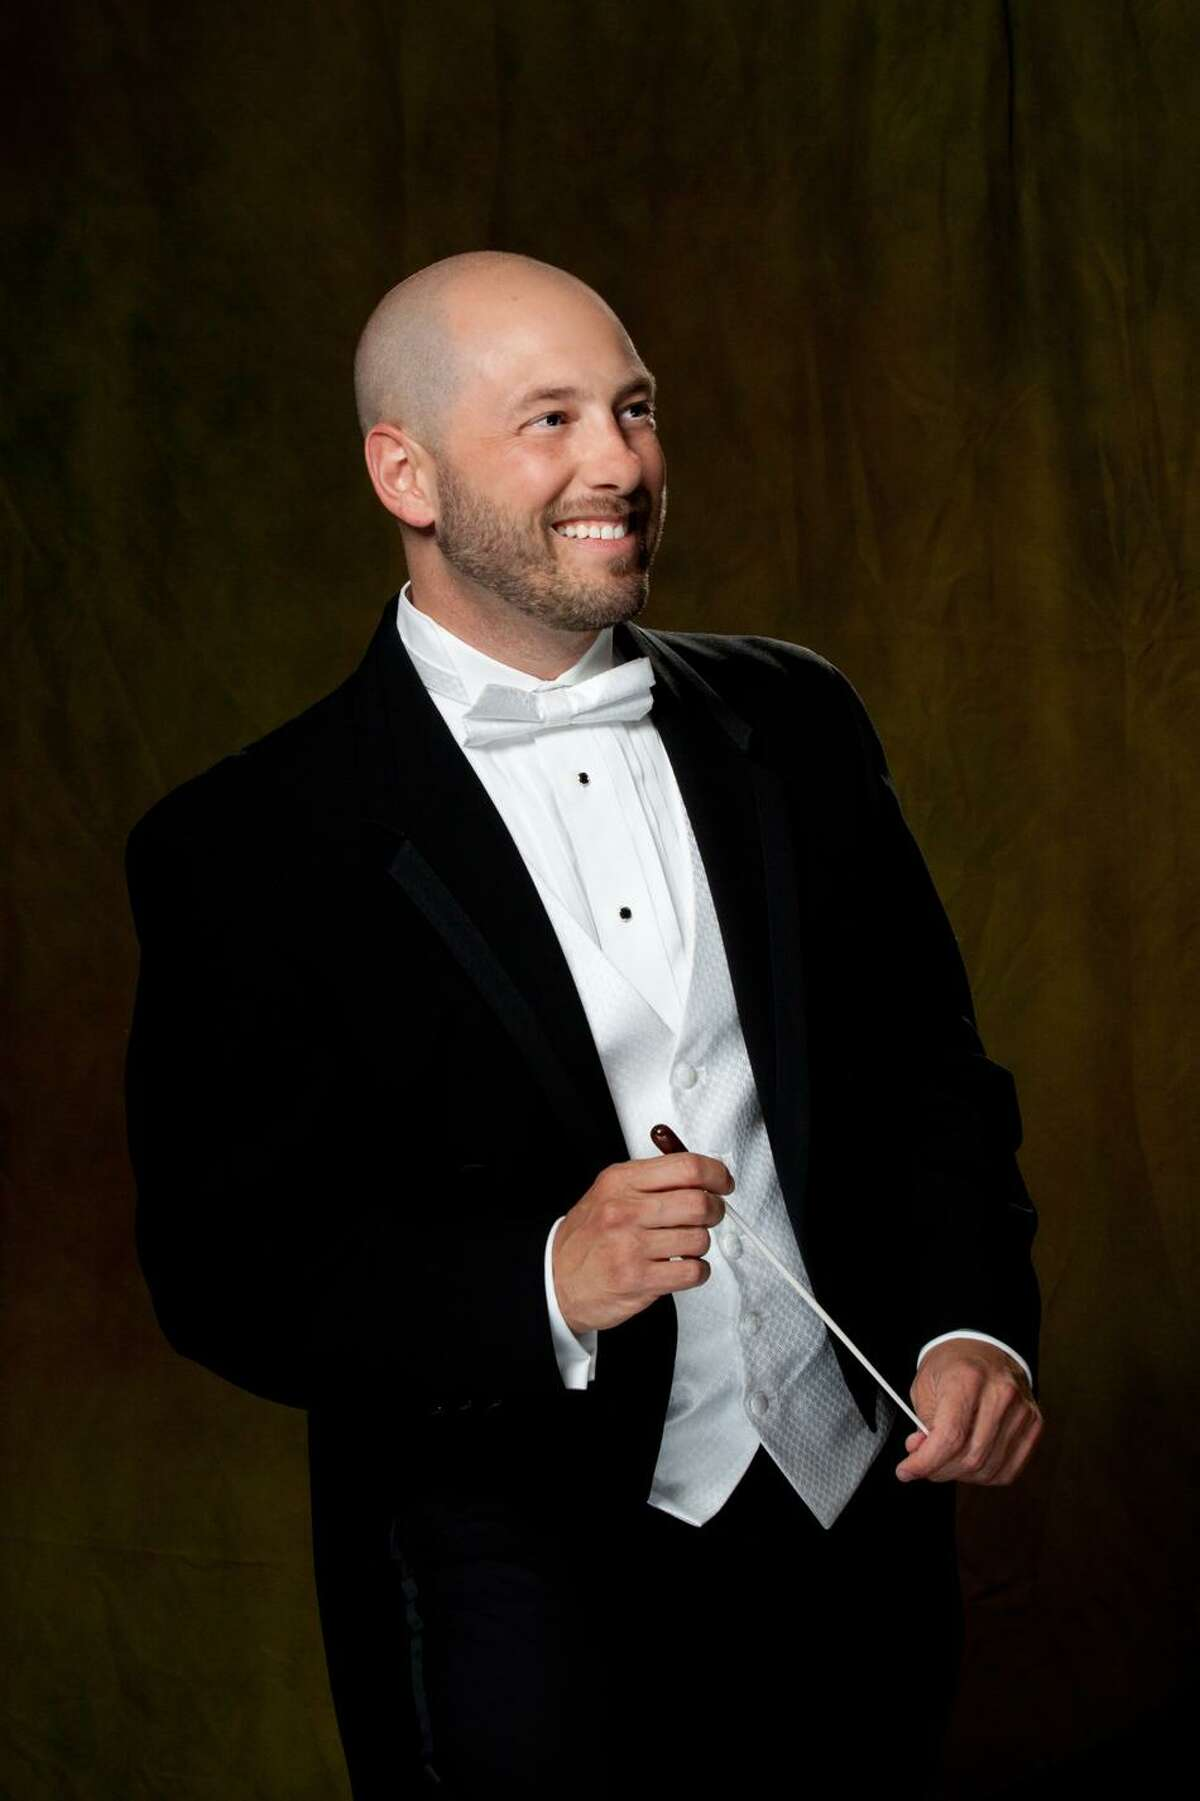 GMChorale, led by Artistic Director Joseph D?'Eugenio, will present Jephte, the rarely-heard oratorio by early Baroque composer Giacomo Carissimi. Sunday, April 29 at 4 p.m. at the MHS Performing Arts Center in Middletown.